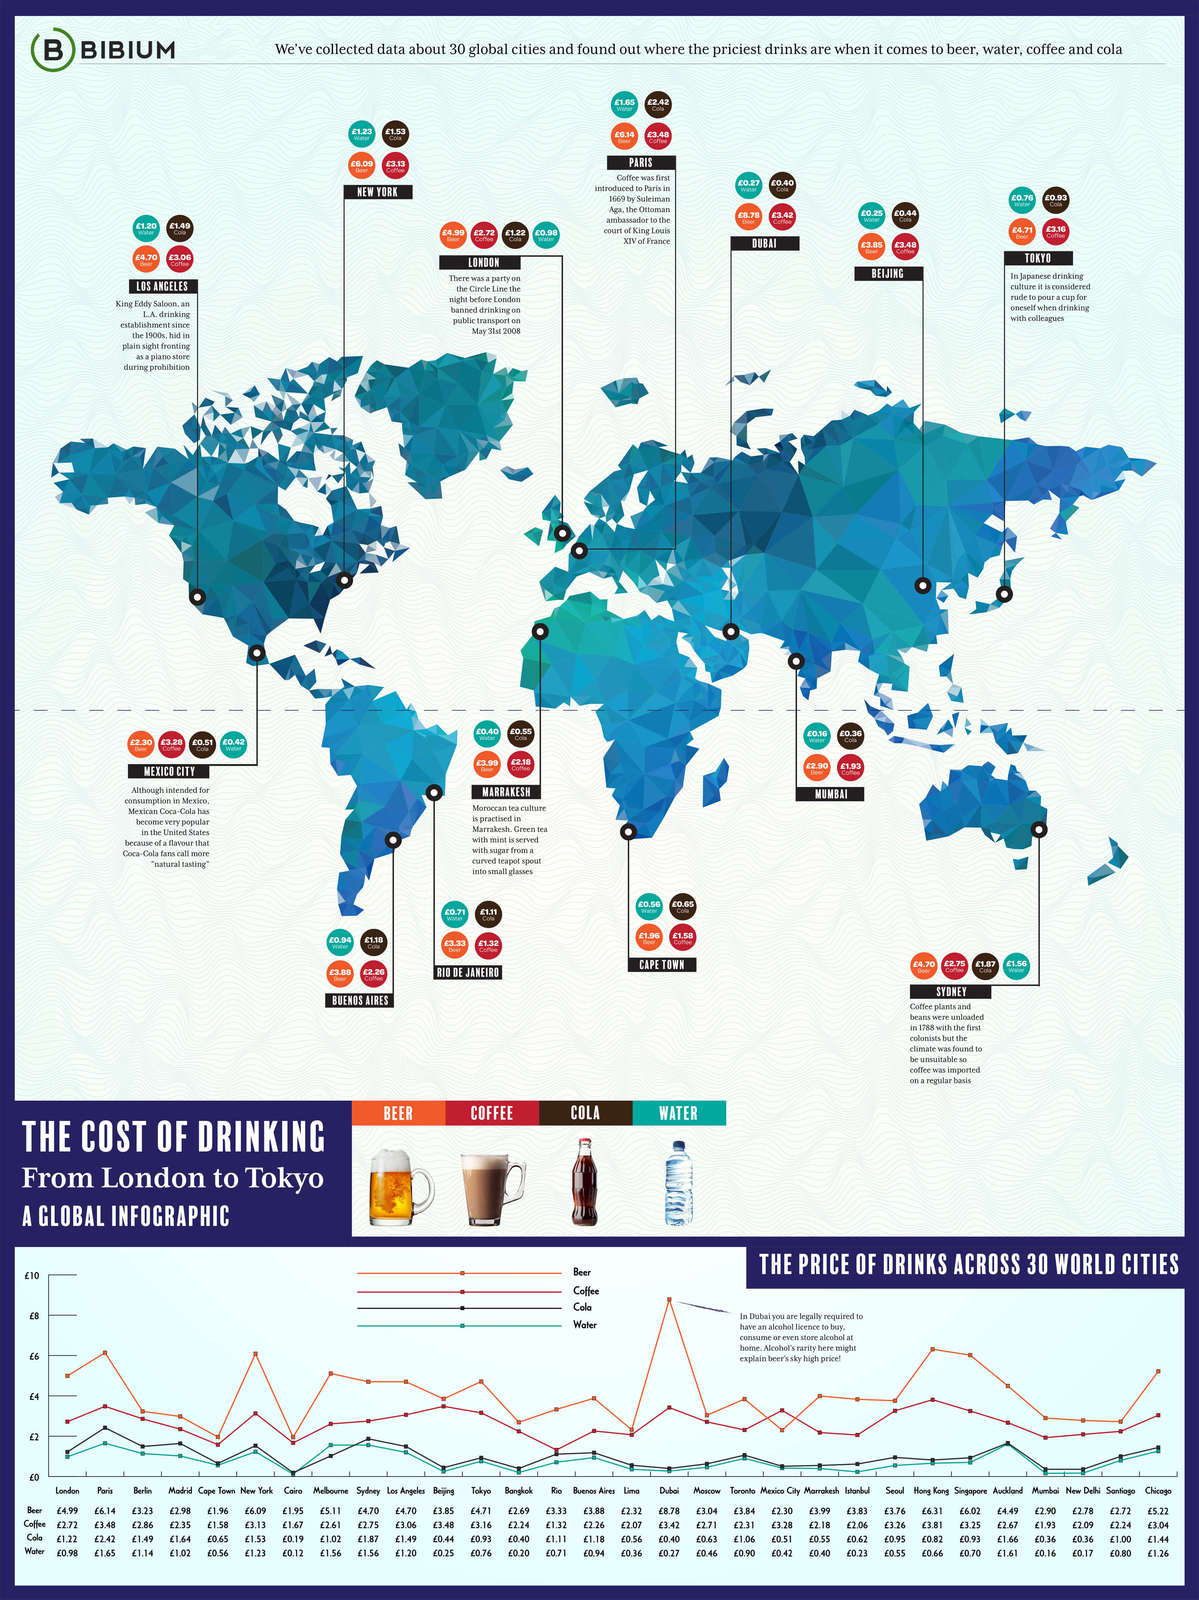 The Cost Of Drinking From London To Tokyo A Global Infogrpahic